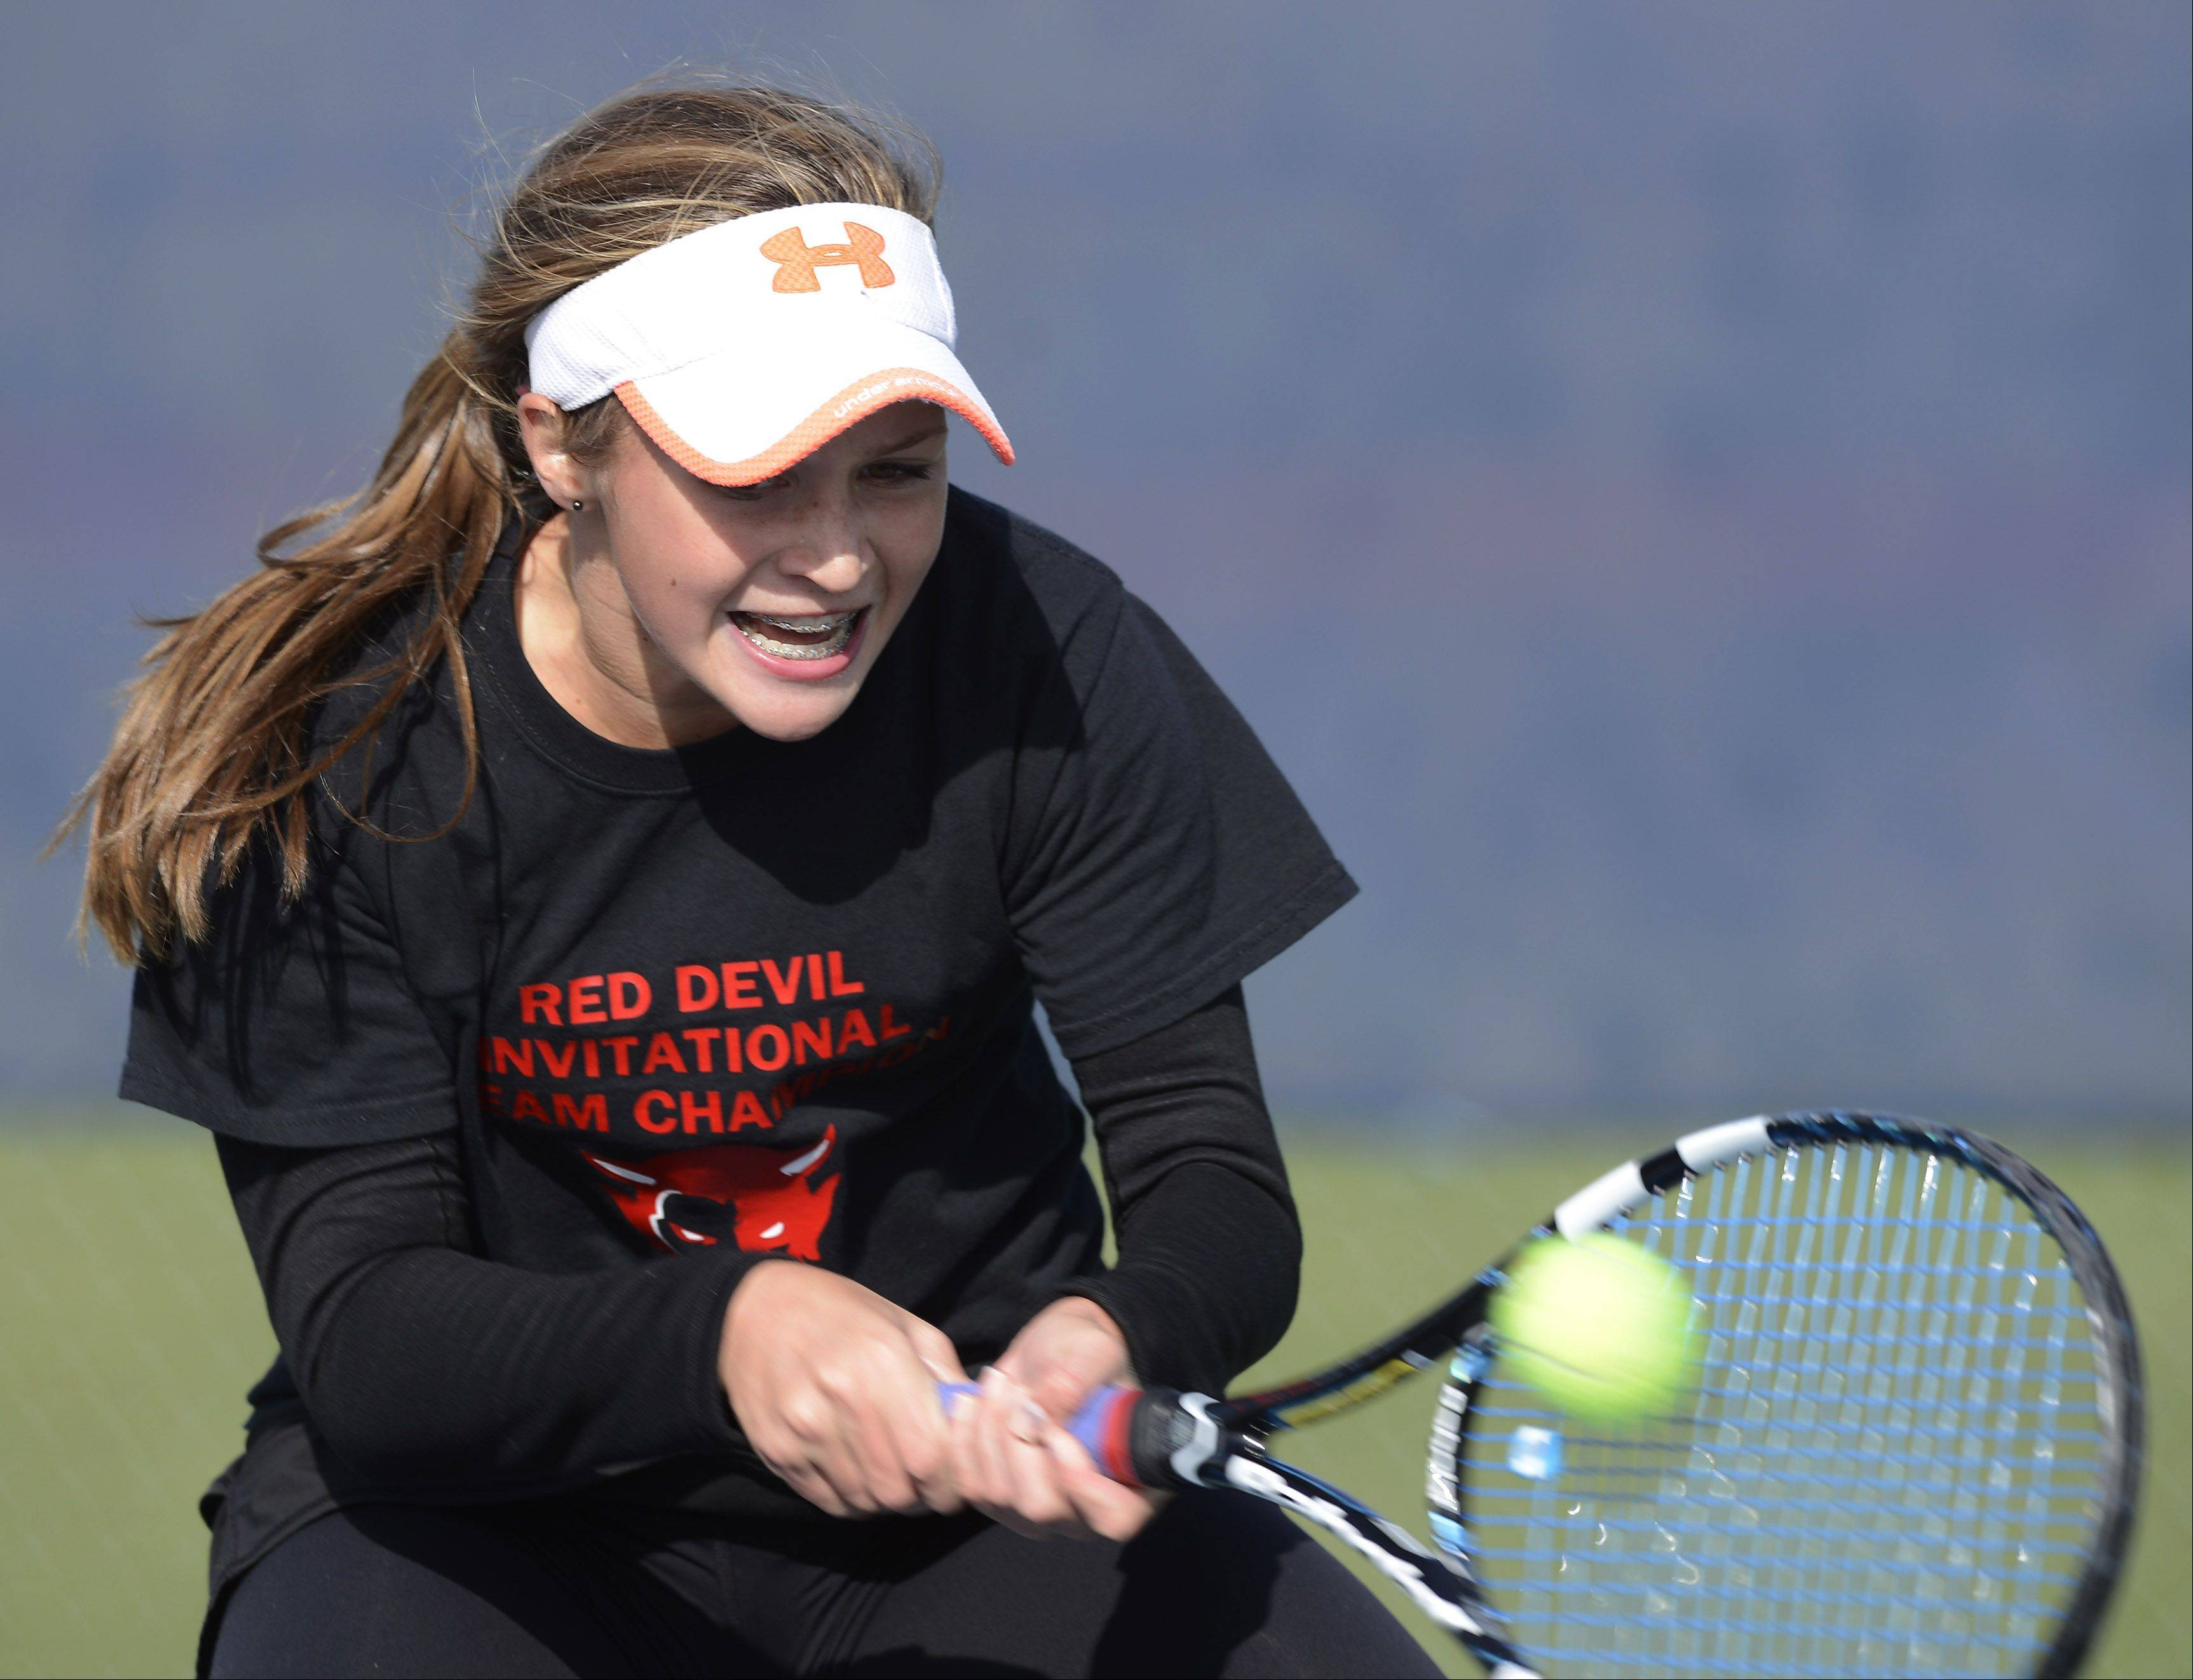 Hinsdale Central's Isabelle Lorenzini returns a volley during the girls state tennis semifinals at Buffalo Grove High School Saturday.